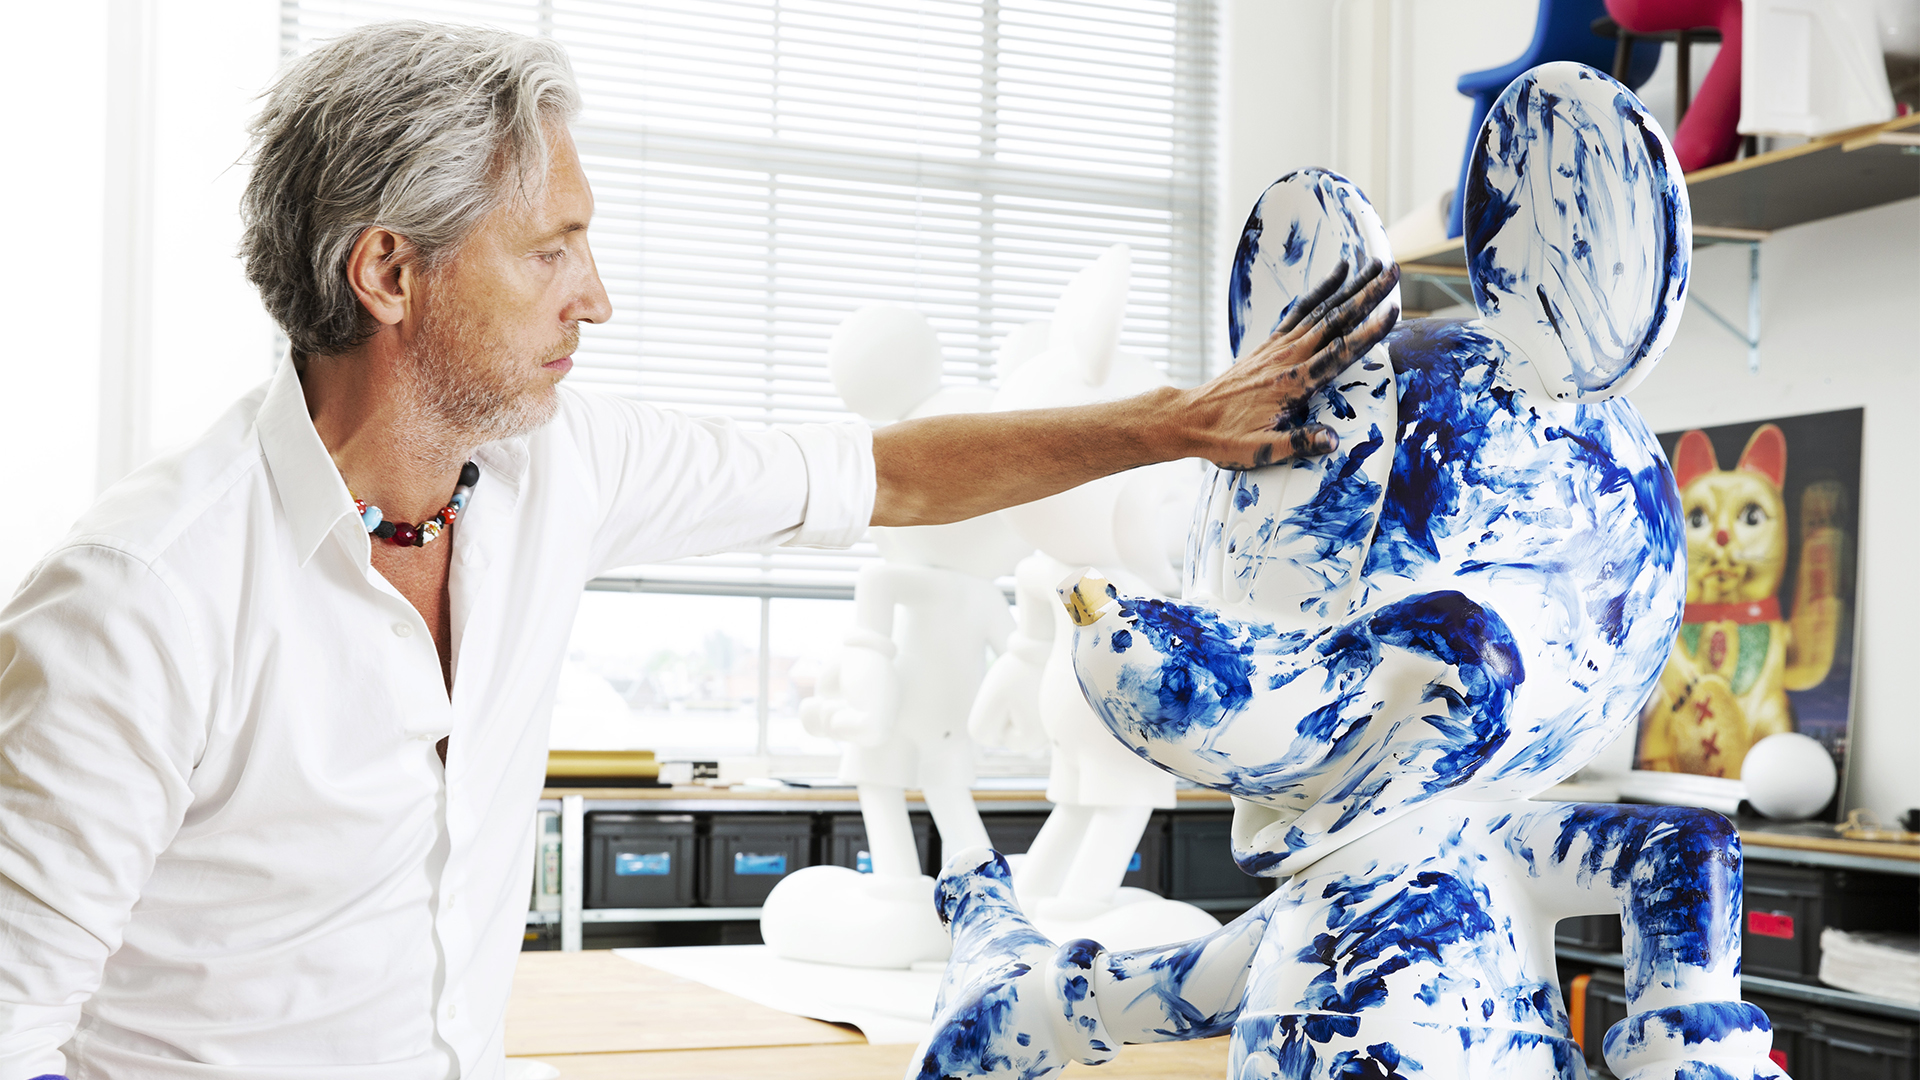 Contemporary Design Best Interior Designers in the World - Marcel Wanders contemporary design Contemporary Design: Best Designers and Architects in the World Contemporary Design Best Interior Designers in the World Marcel Wanders